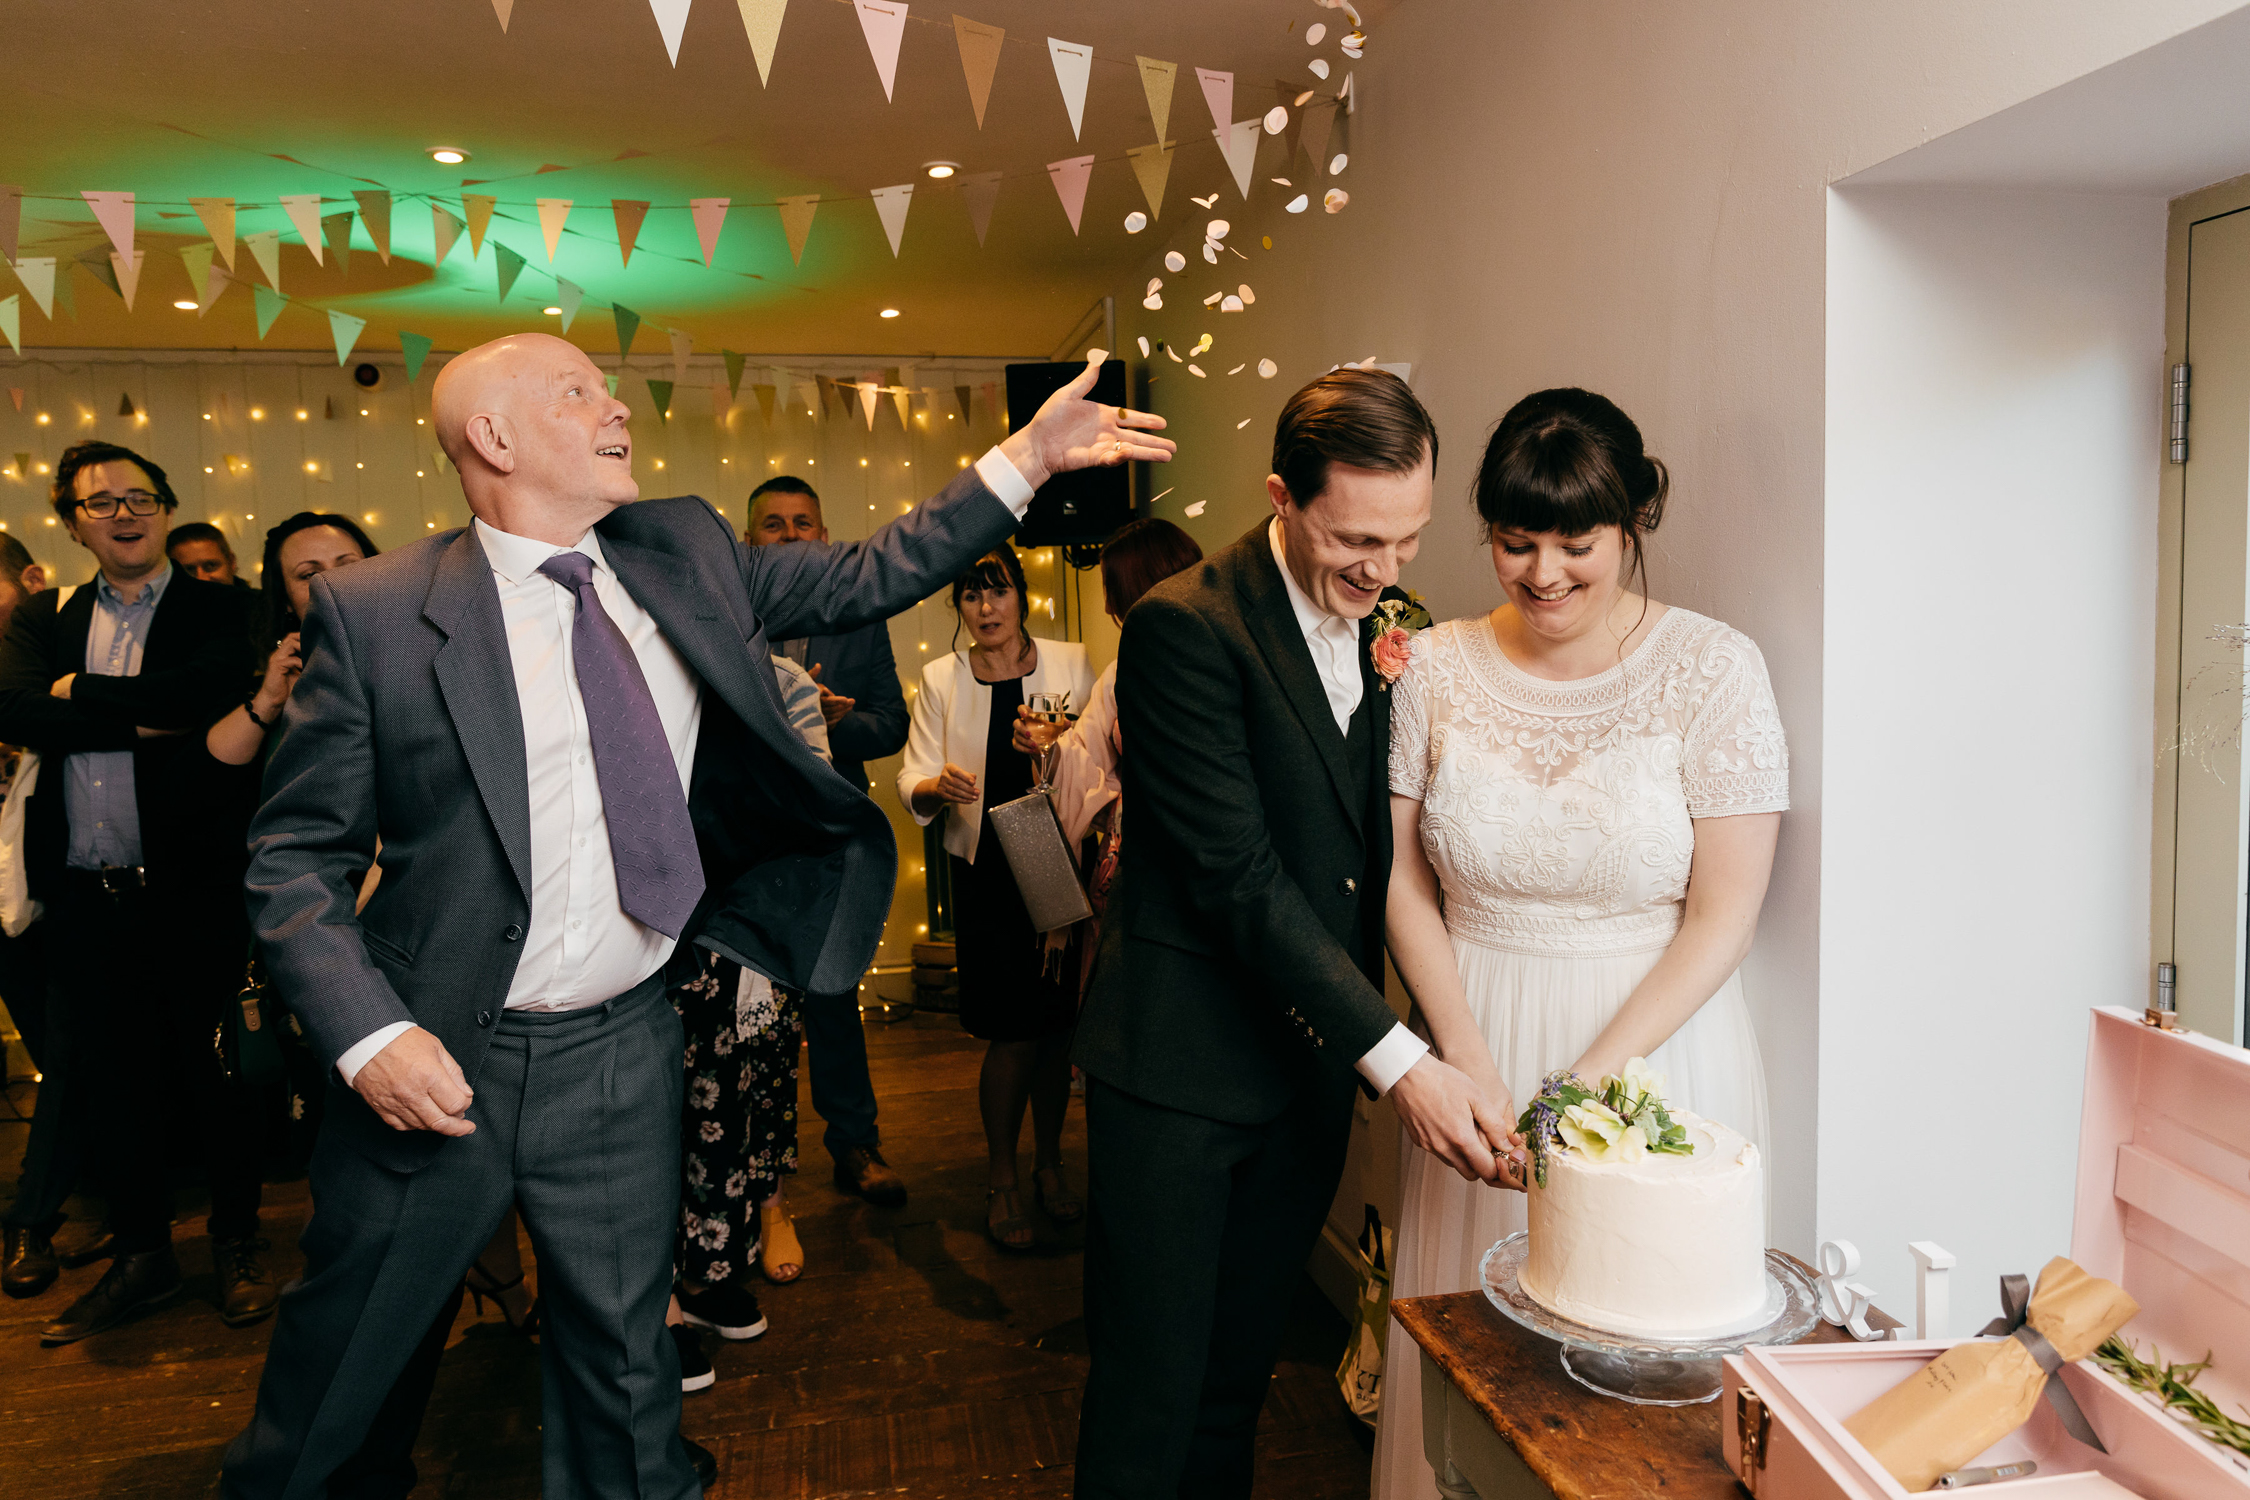 candid wedding photo of surprise confetti being thrown during the cake cut